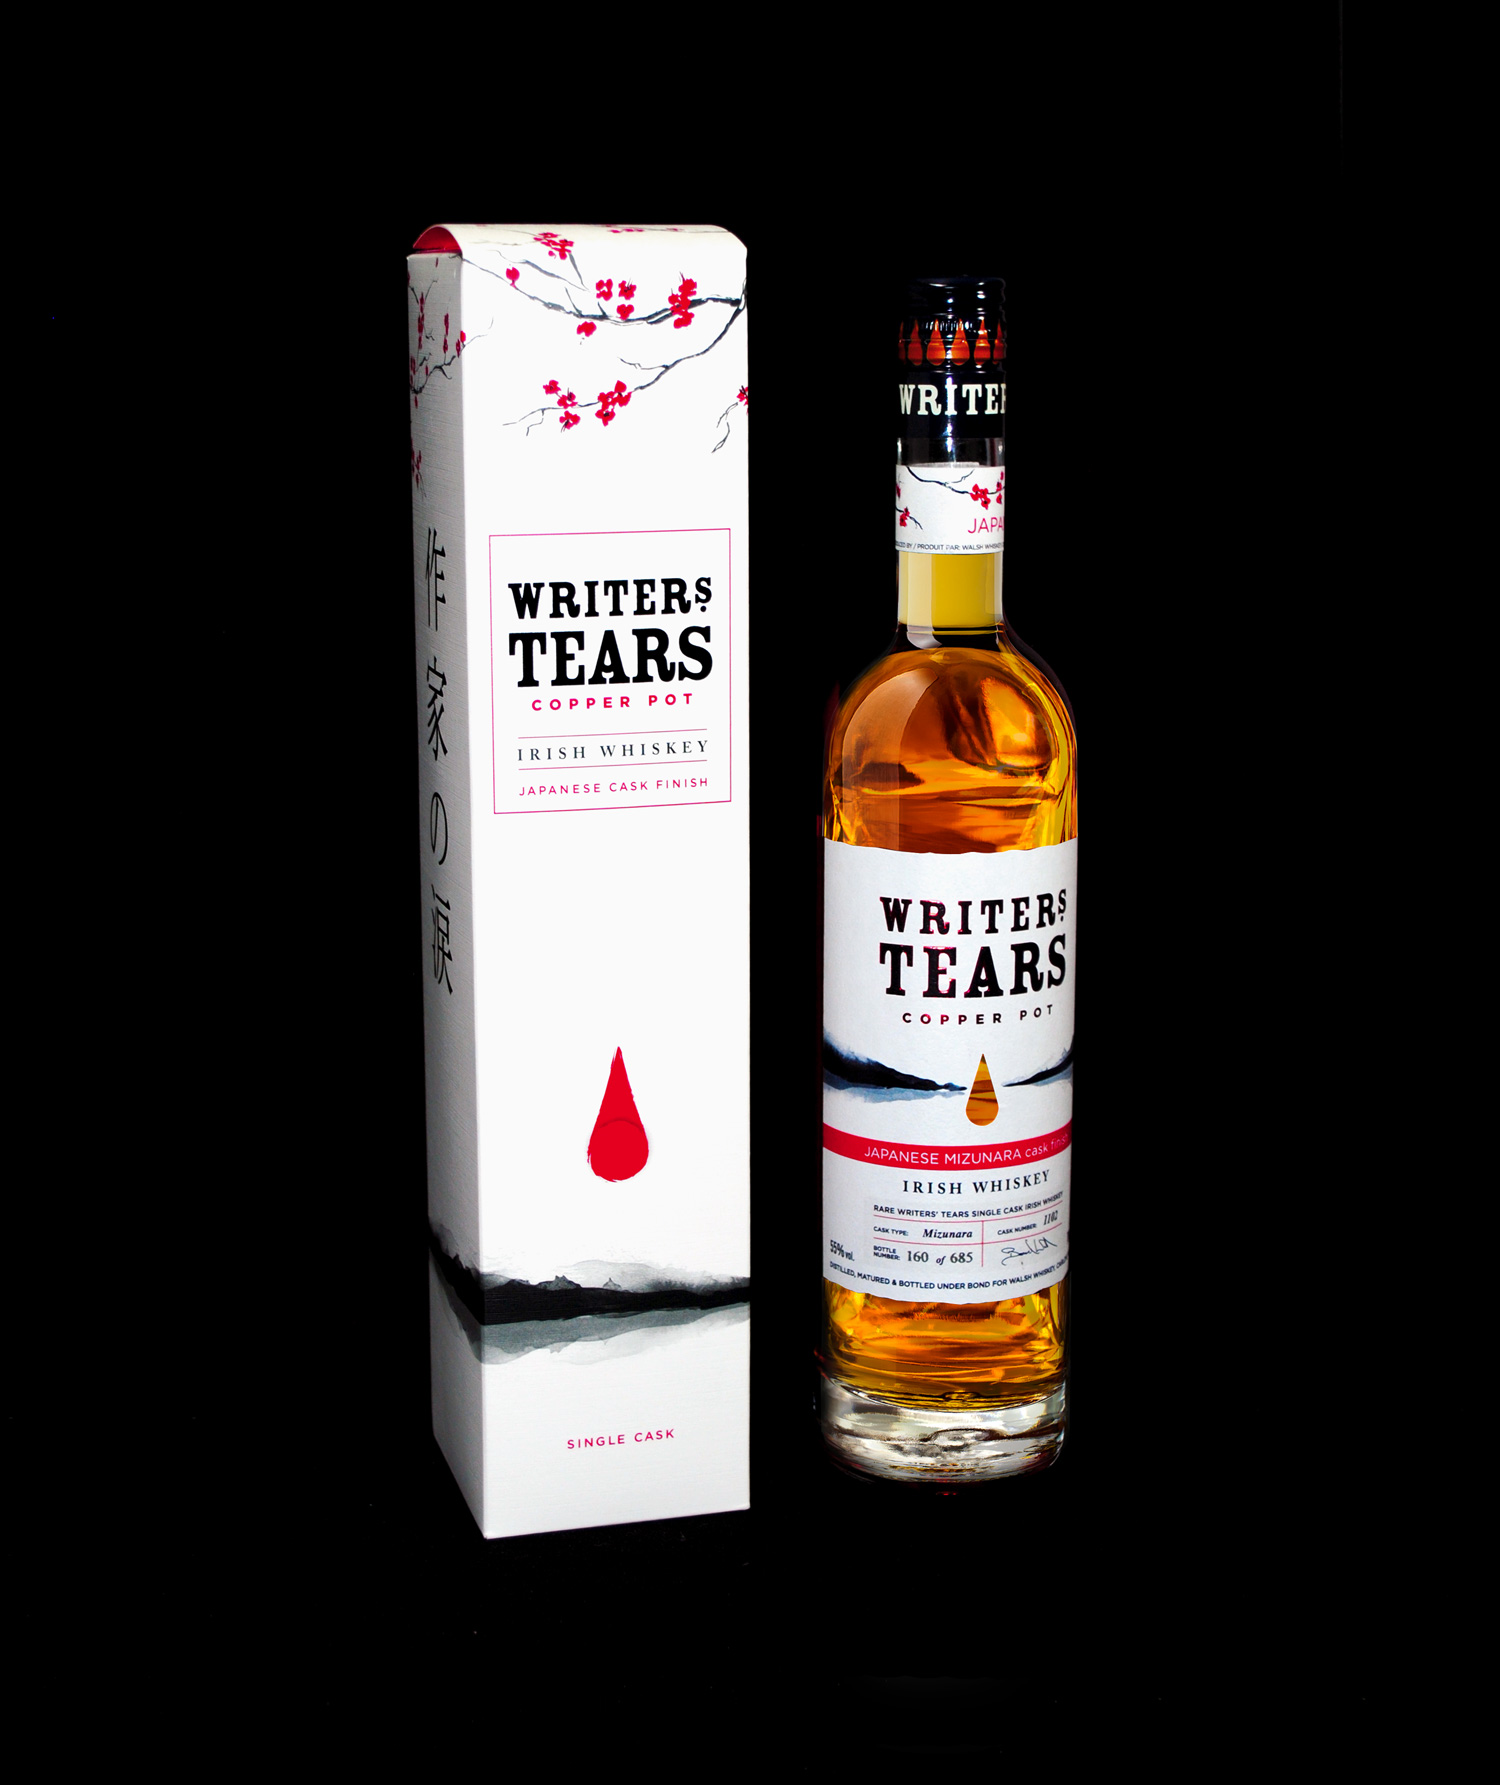 Cover image: Packaging Design for Writers' Tears Copper Pot Japanese Cask Finish